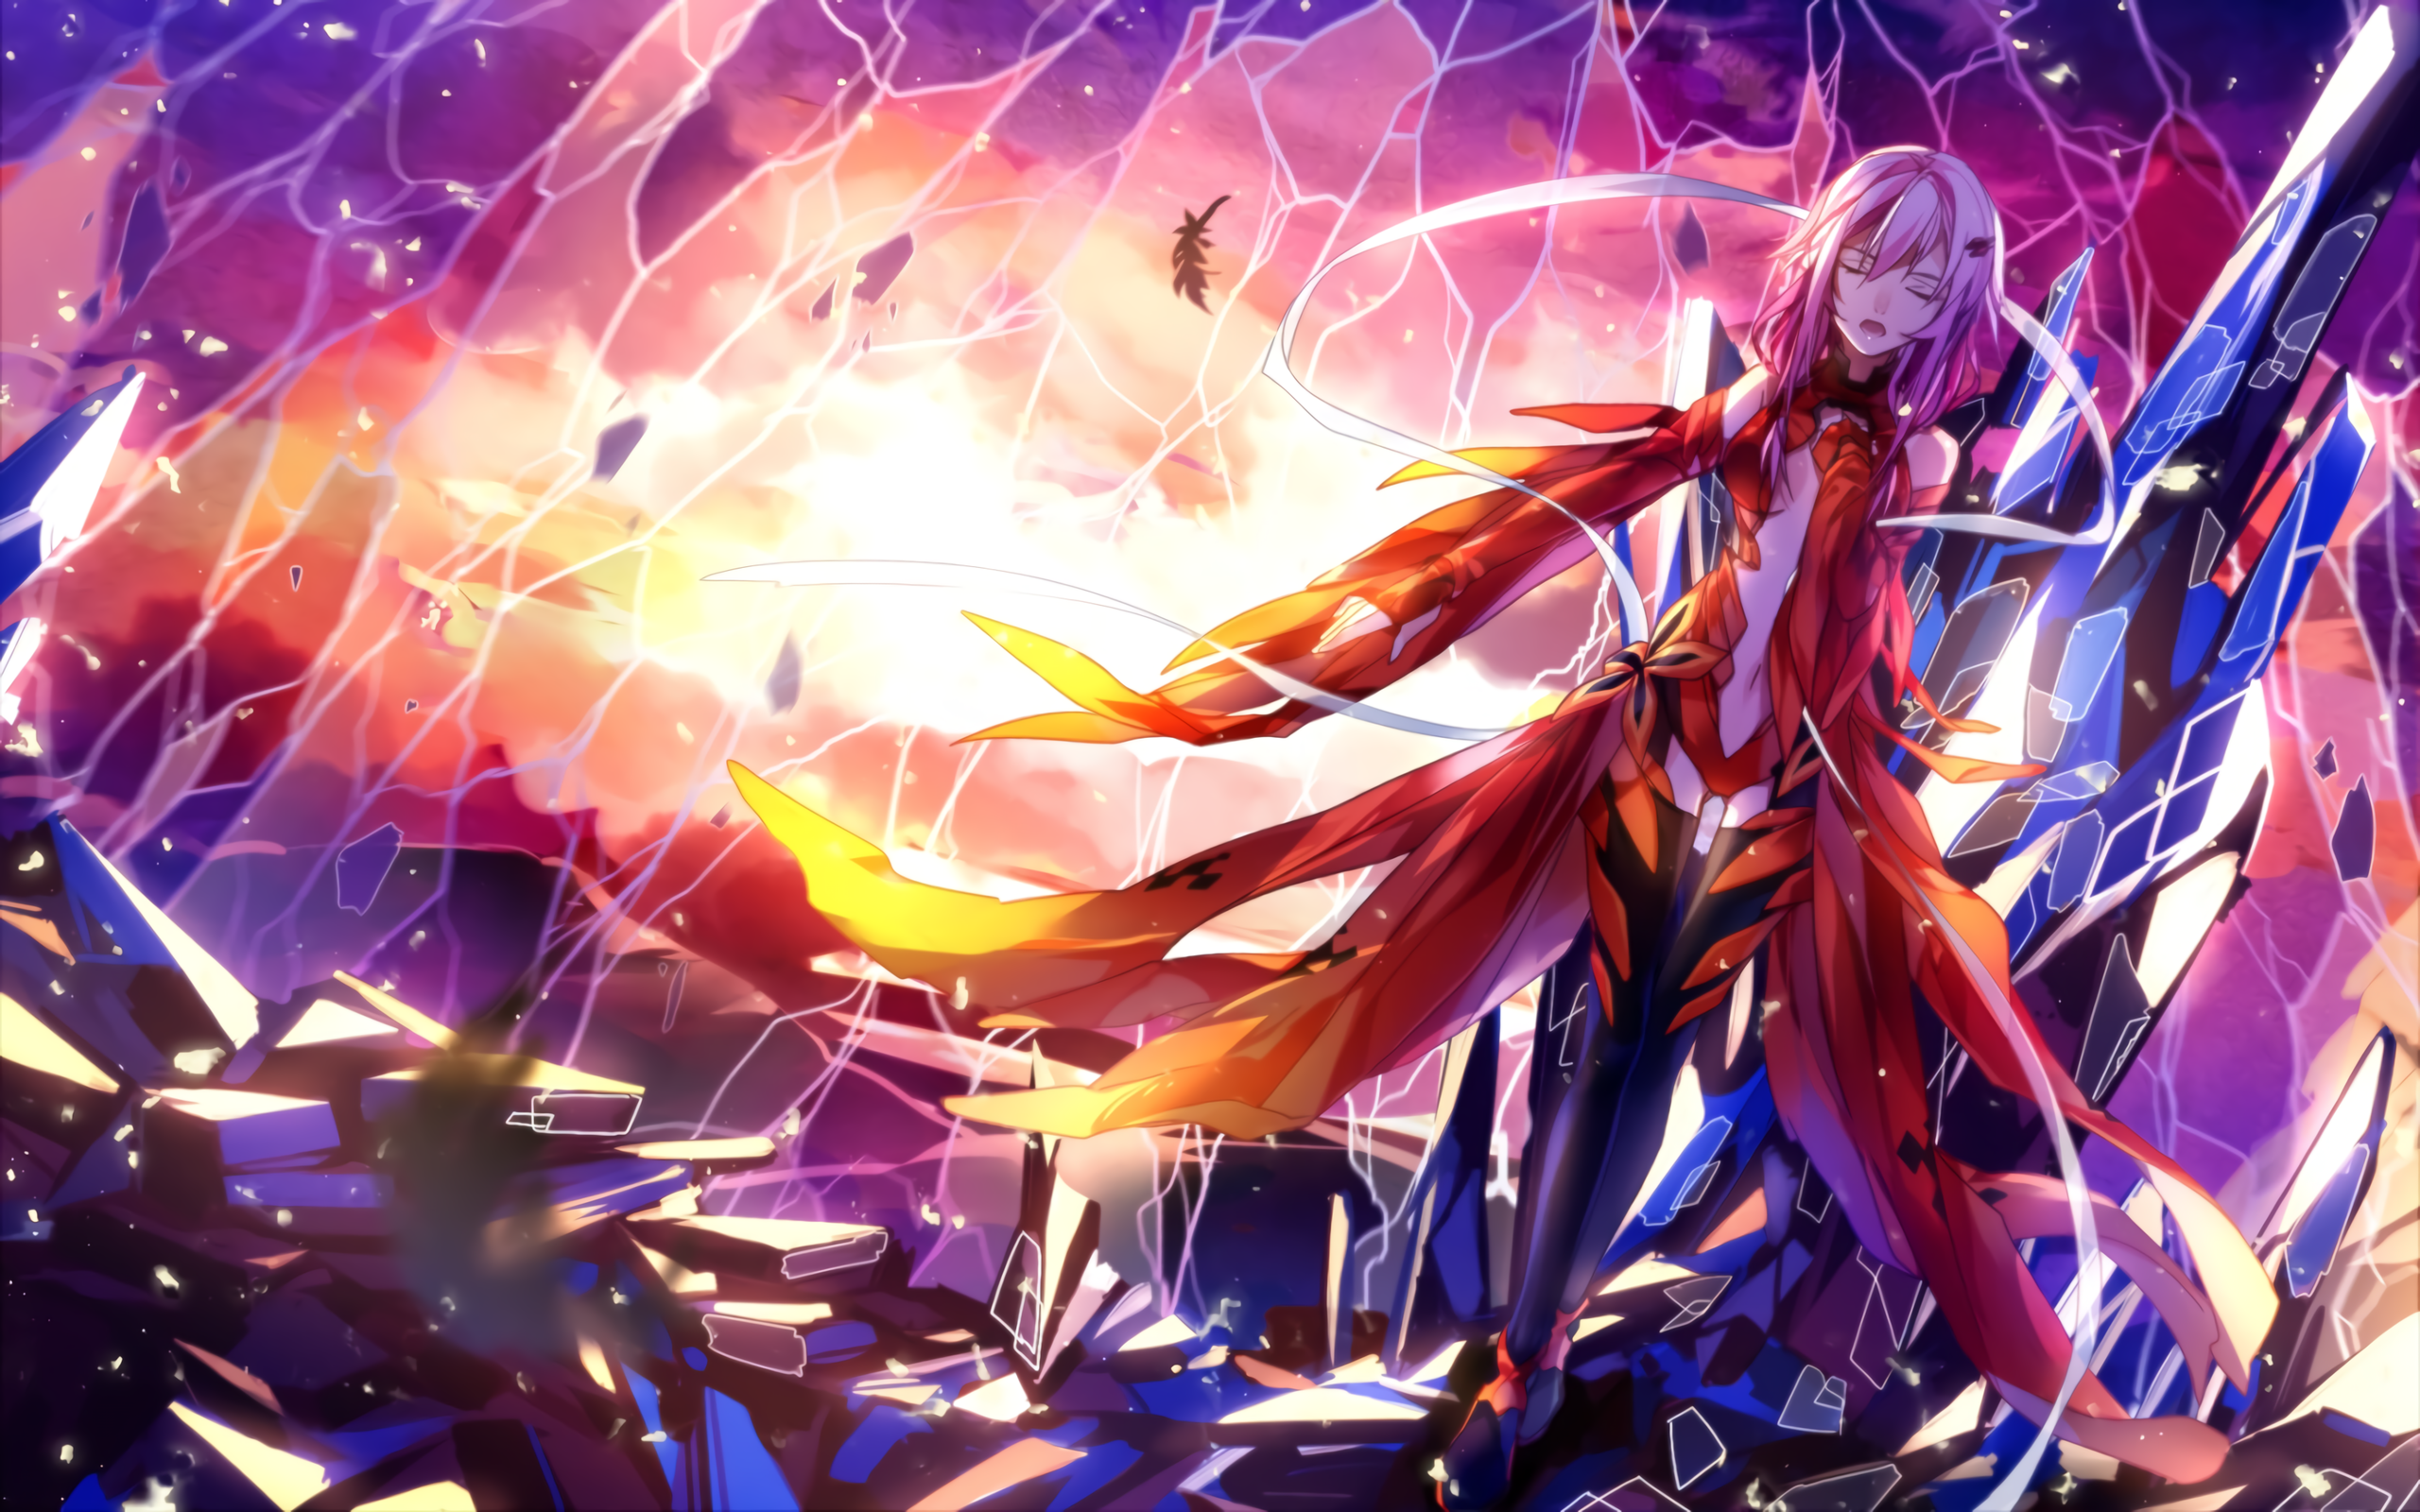 Guilty Crown 2560x1600 If You Like Anime Wallpapers Check Out